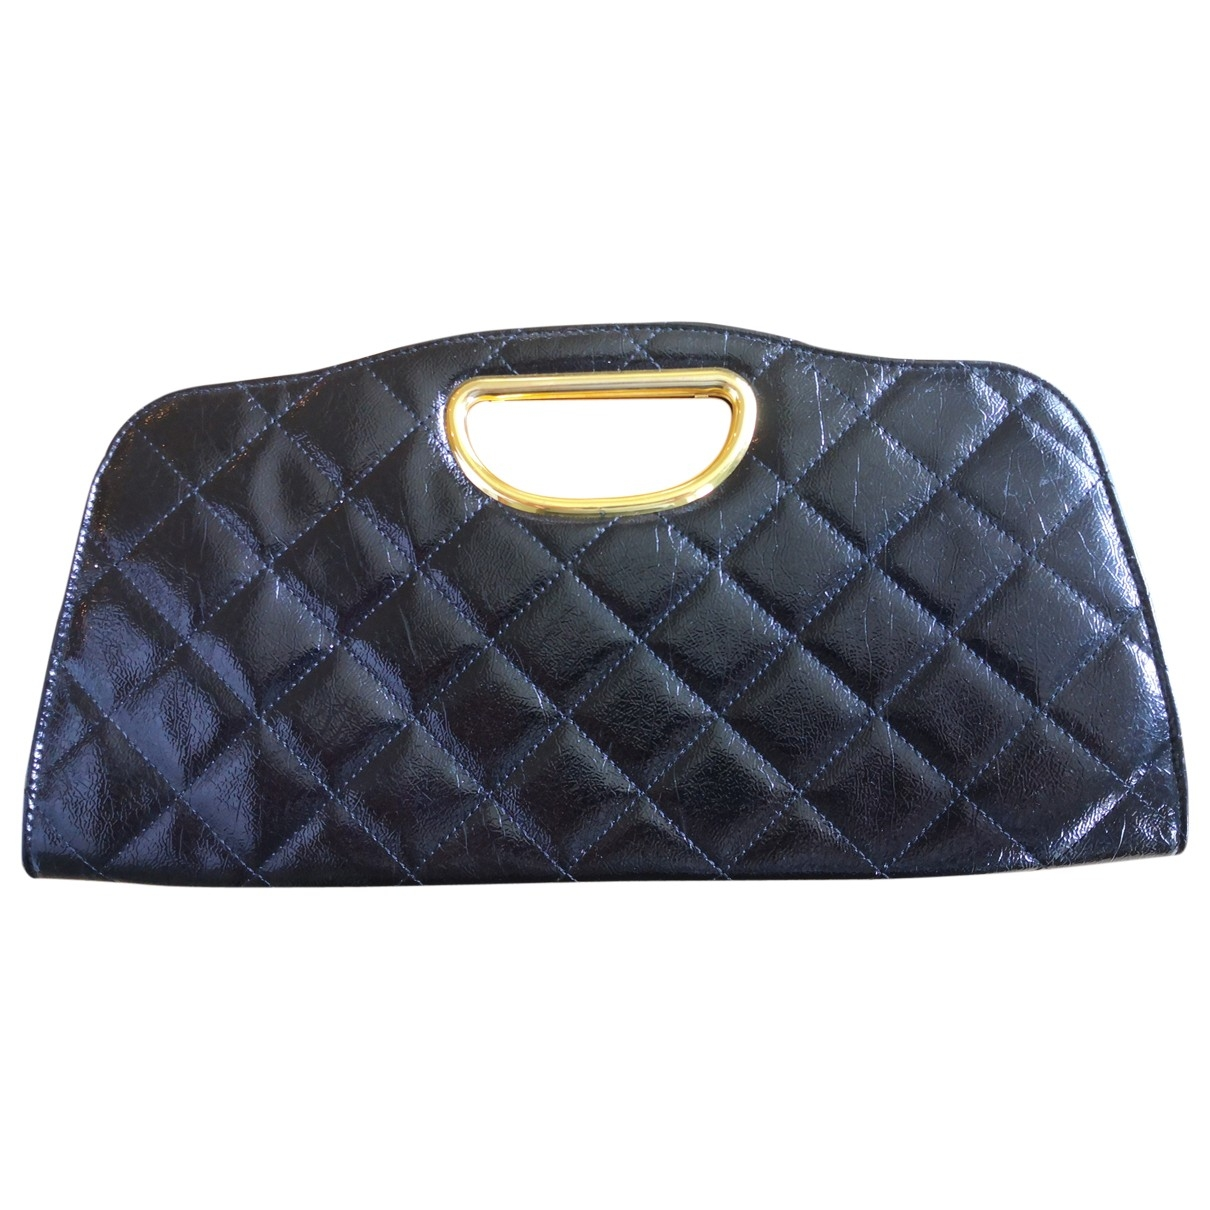 Non Signe / Unsigned \N Clutch in  Schwarz Lackleder